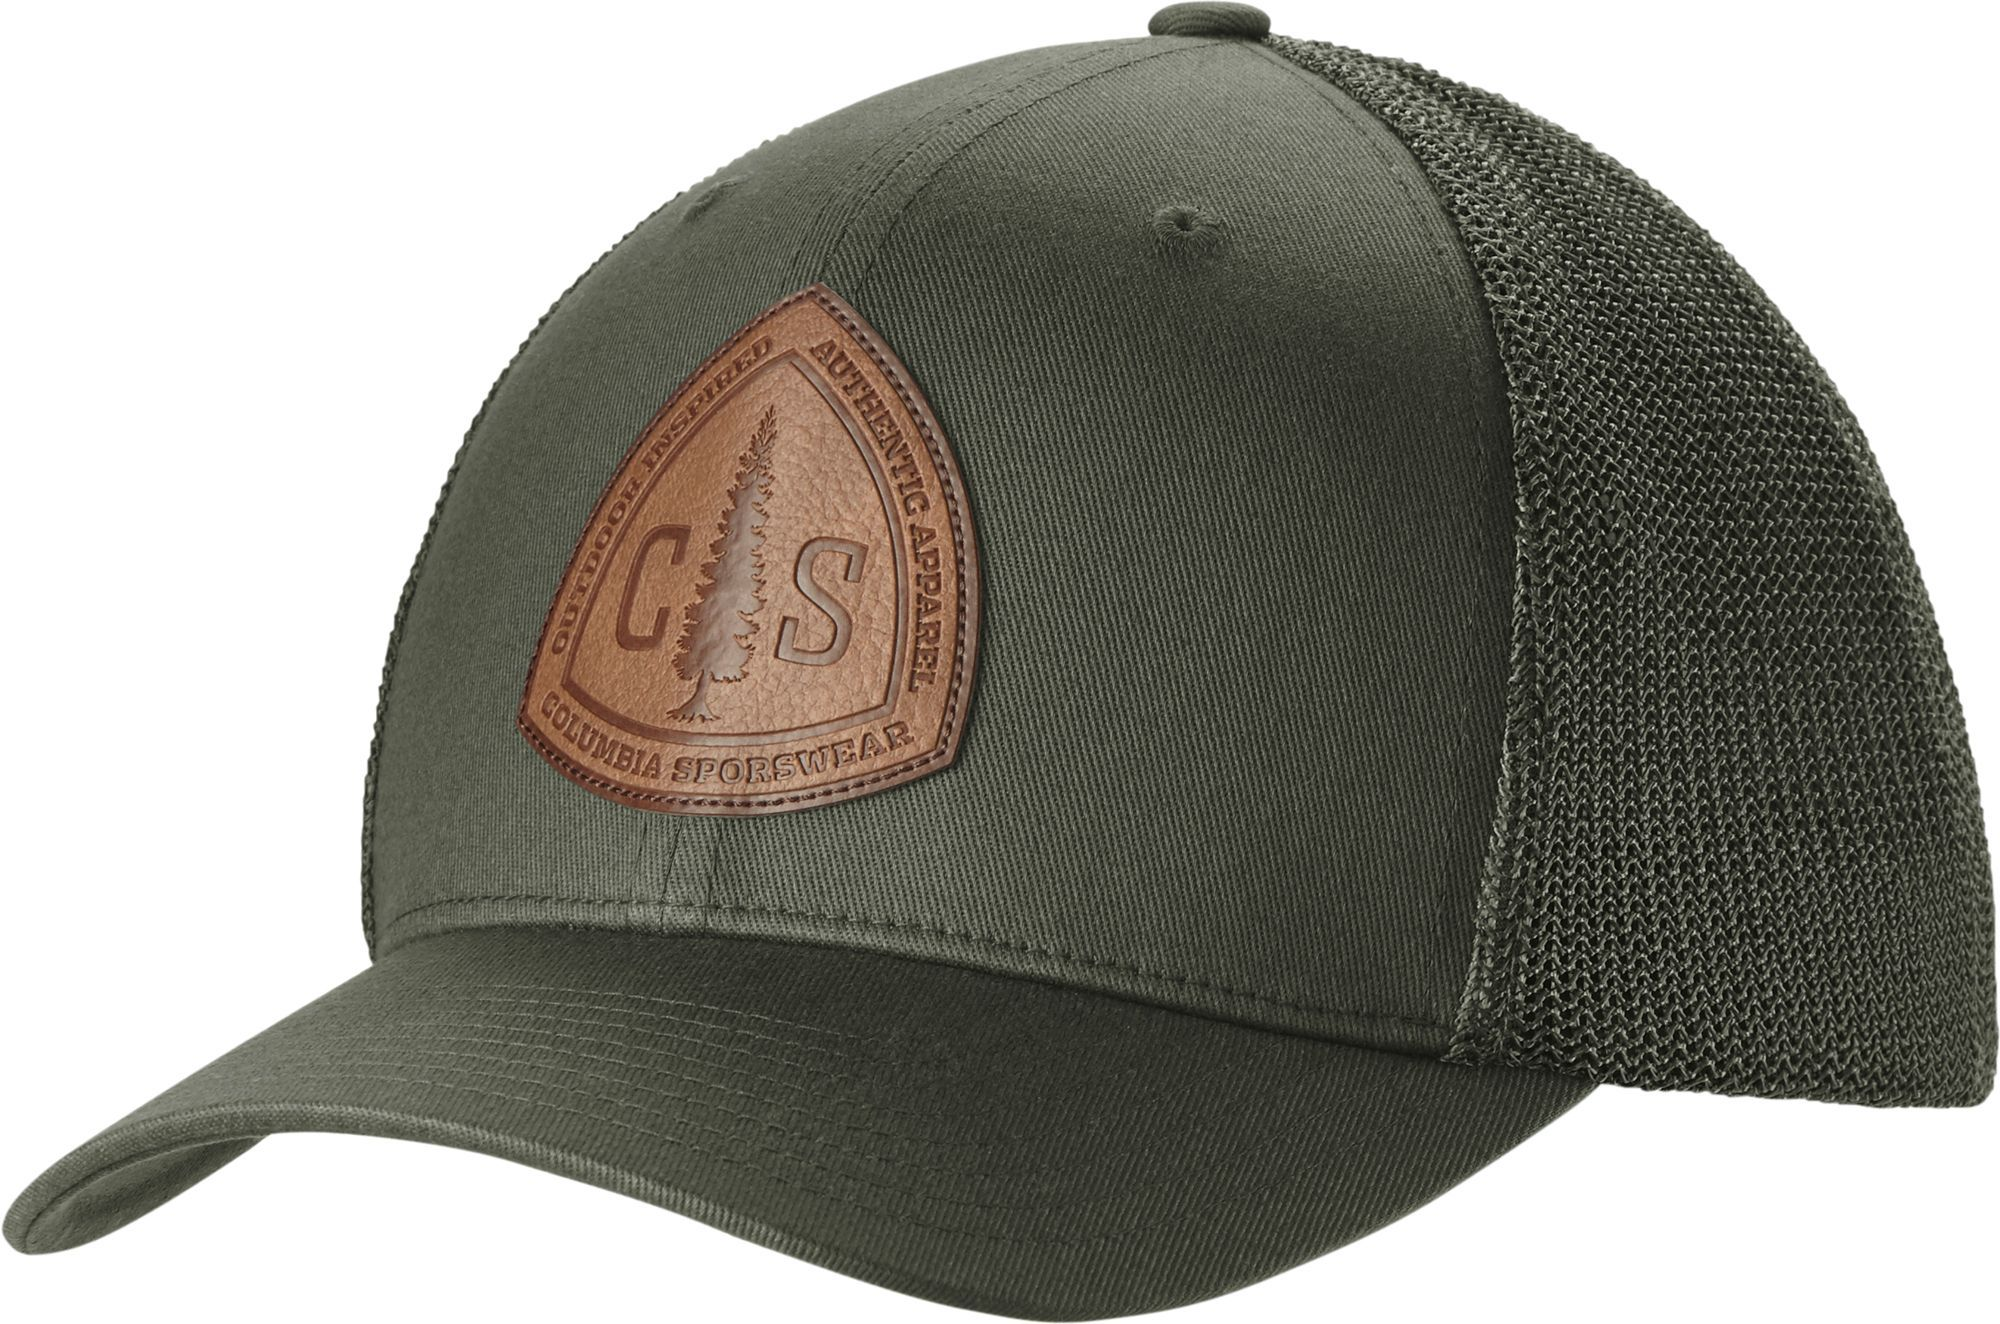 78be3e70898e60 Columbia Men's Rugged Outdoor Mesh Hat | Products | Hats, Outdoor ...